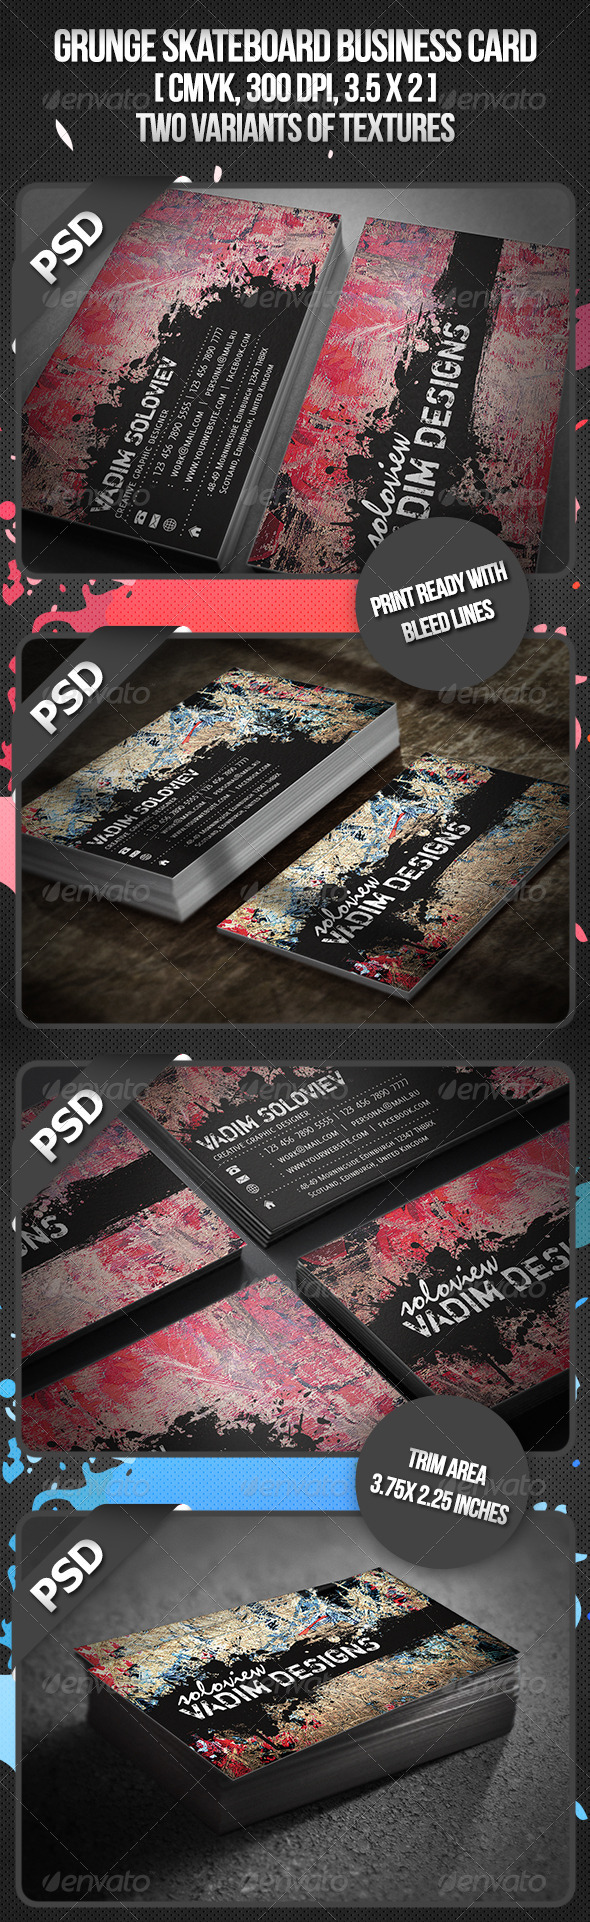 Grunge Skateboard Business Card - Grunge Business Cards